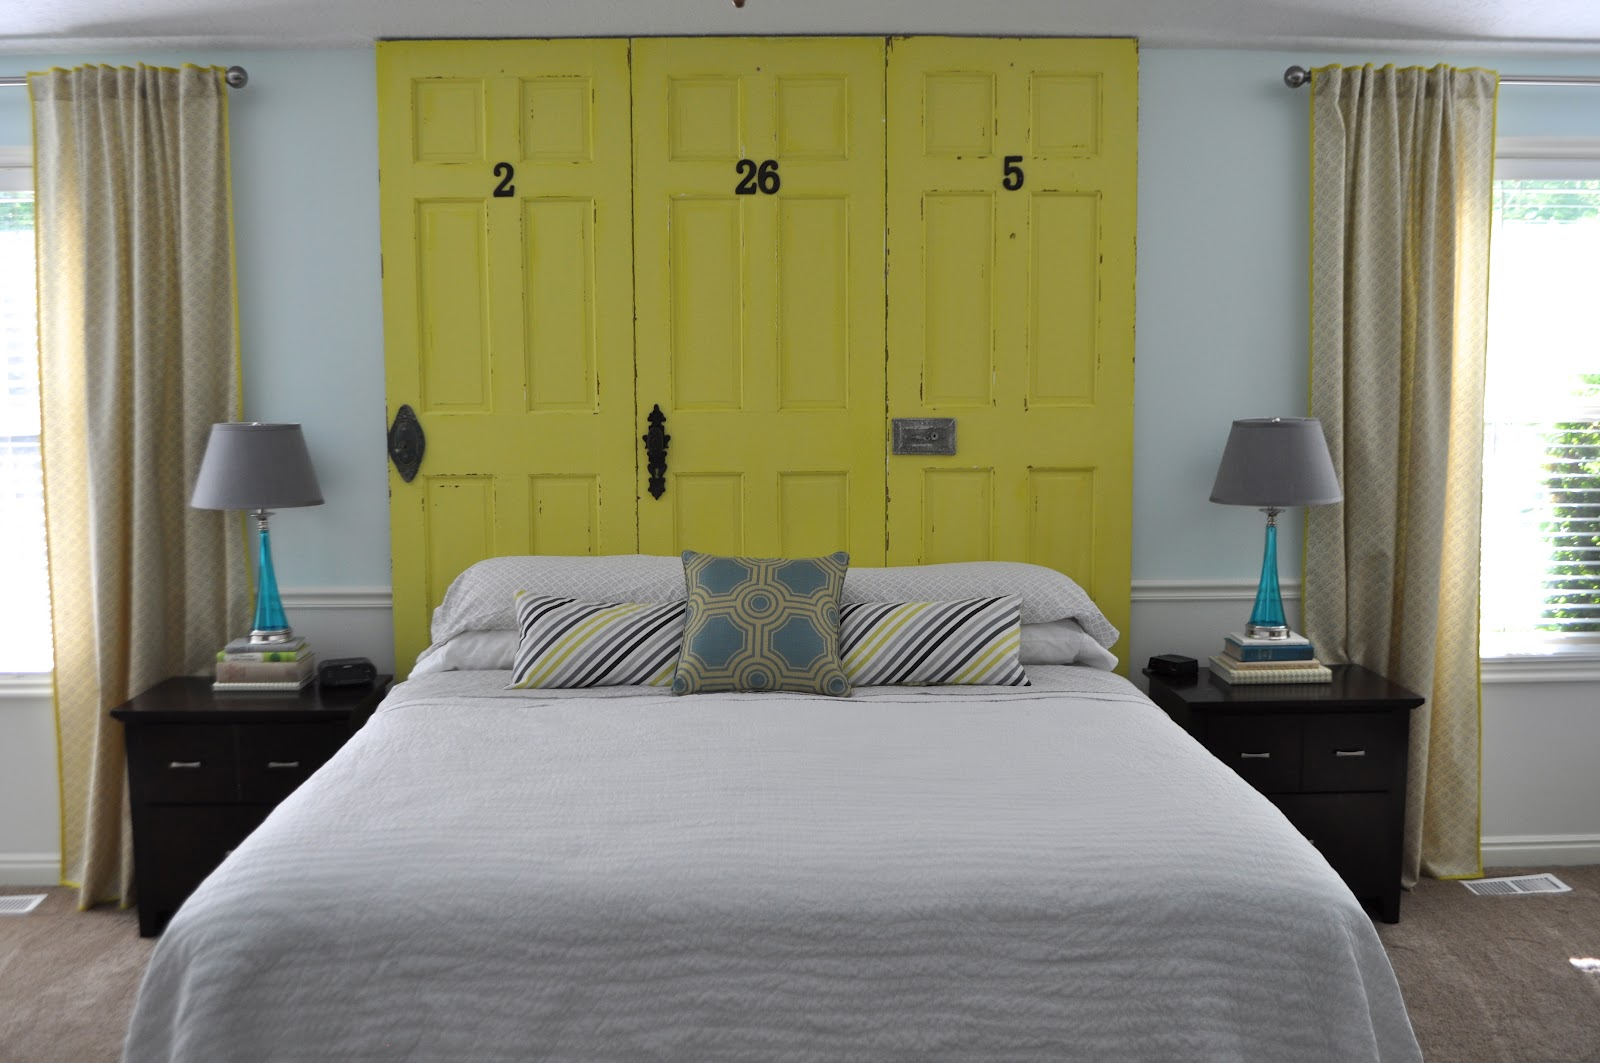 i am momma hear me roar how to make a headboard from doors. Black Bedroom Furniture Sets. Home Design Ideas